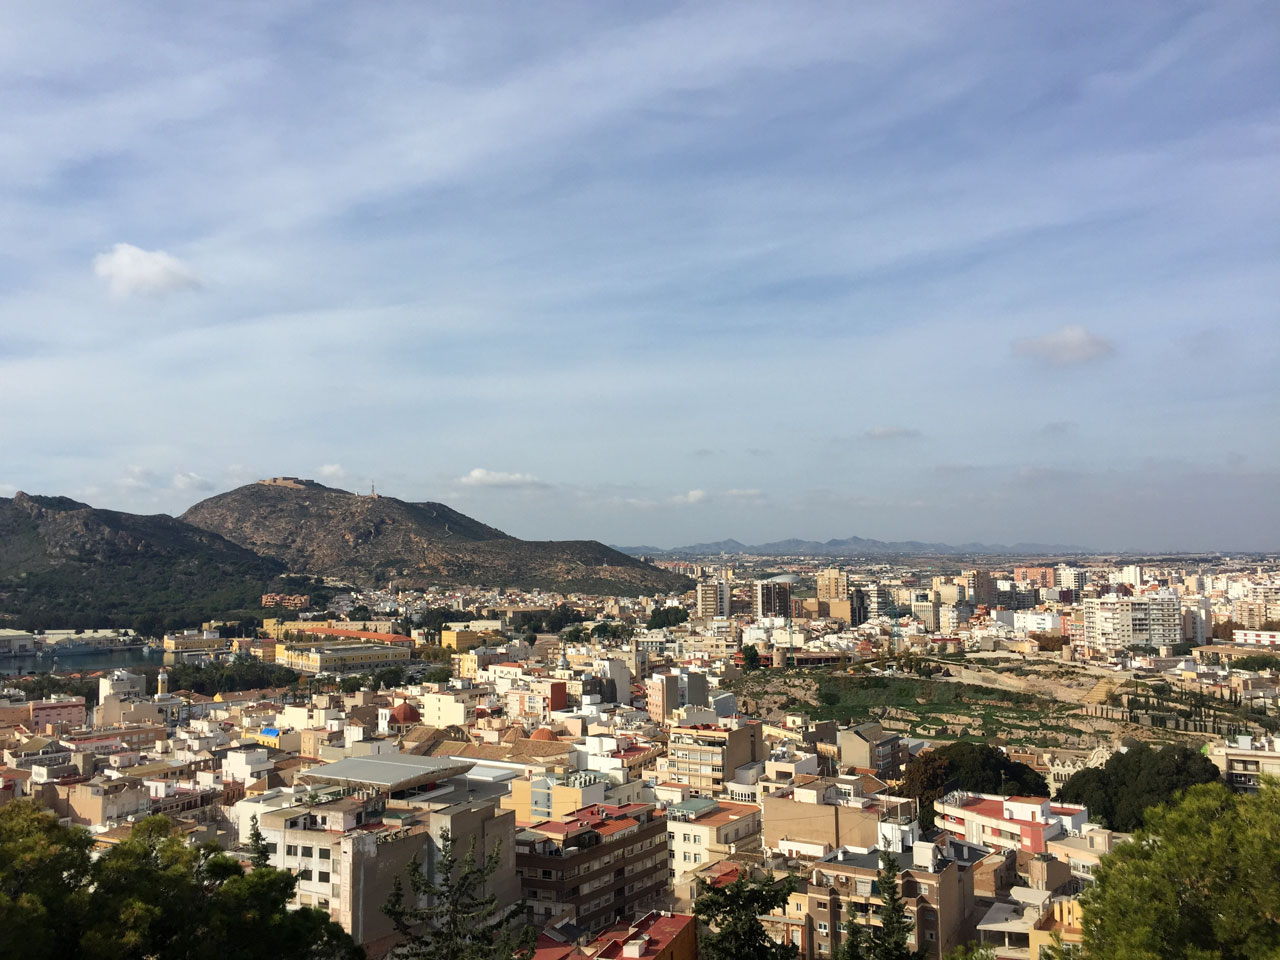 View of Cartagena, Spain from the Castillo de la Concepción